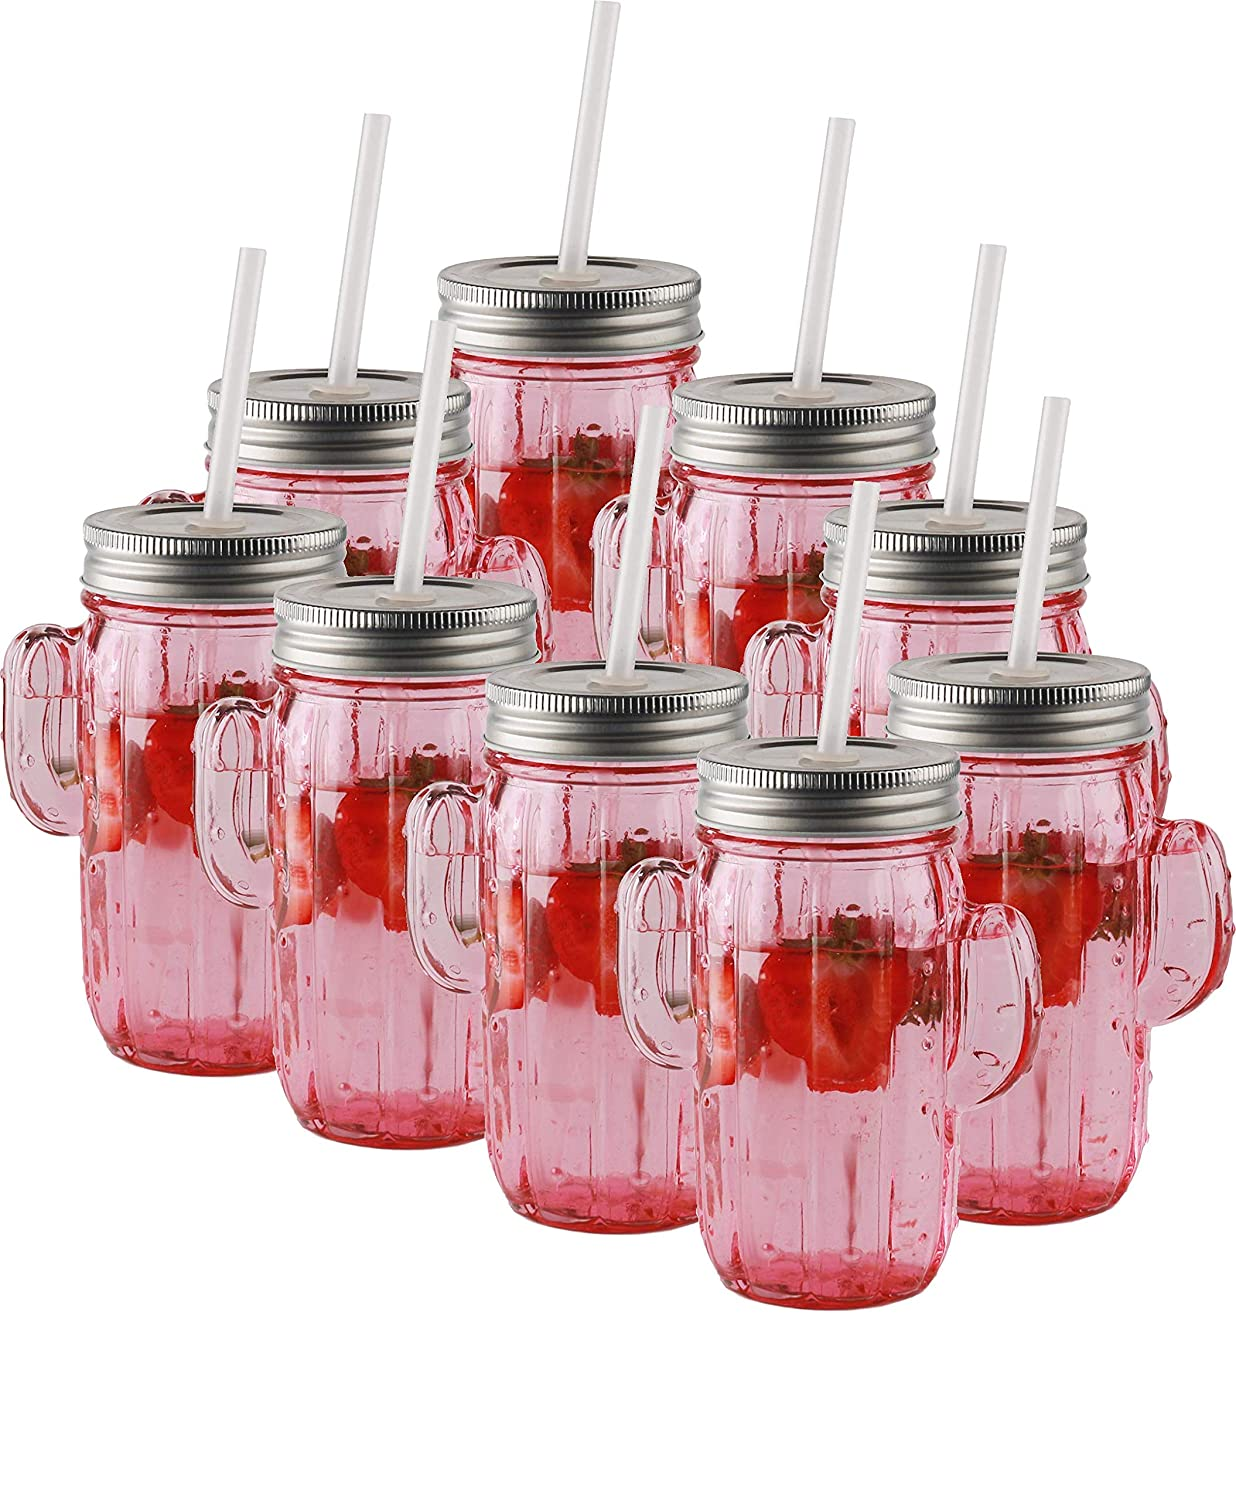 Circleware 06364/AM Pink Mason Jar Drinking Glasses with Metal Lids and Hard Plastic Straws Huge Set of 9 Glassware for Water Beer and Kitchen & Home Decor Bar Dining Beverage Gifts 15.5 oz Cactus